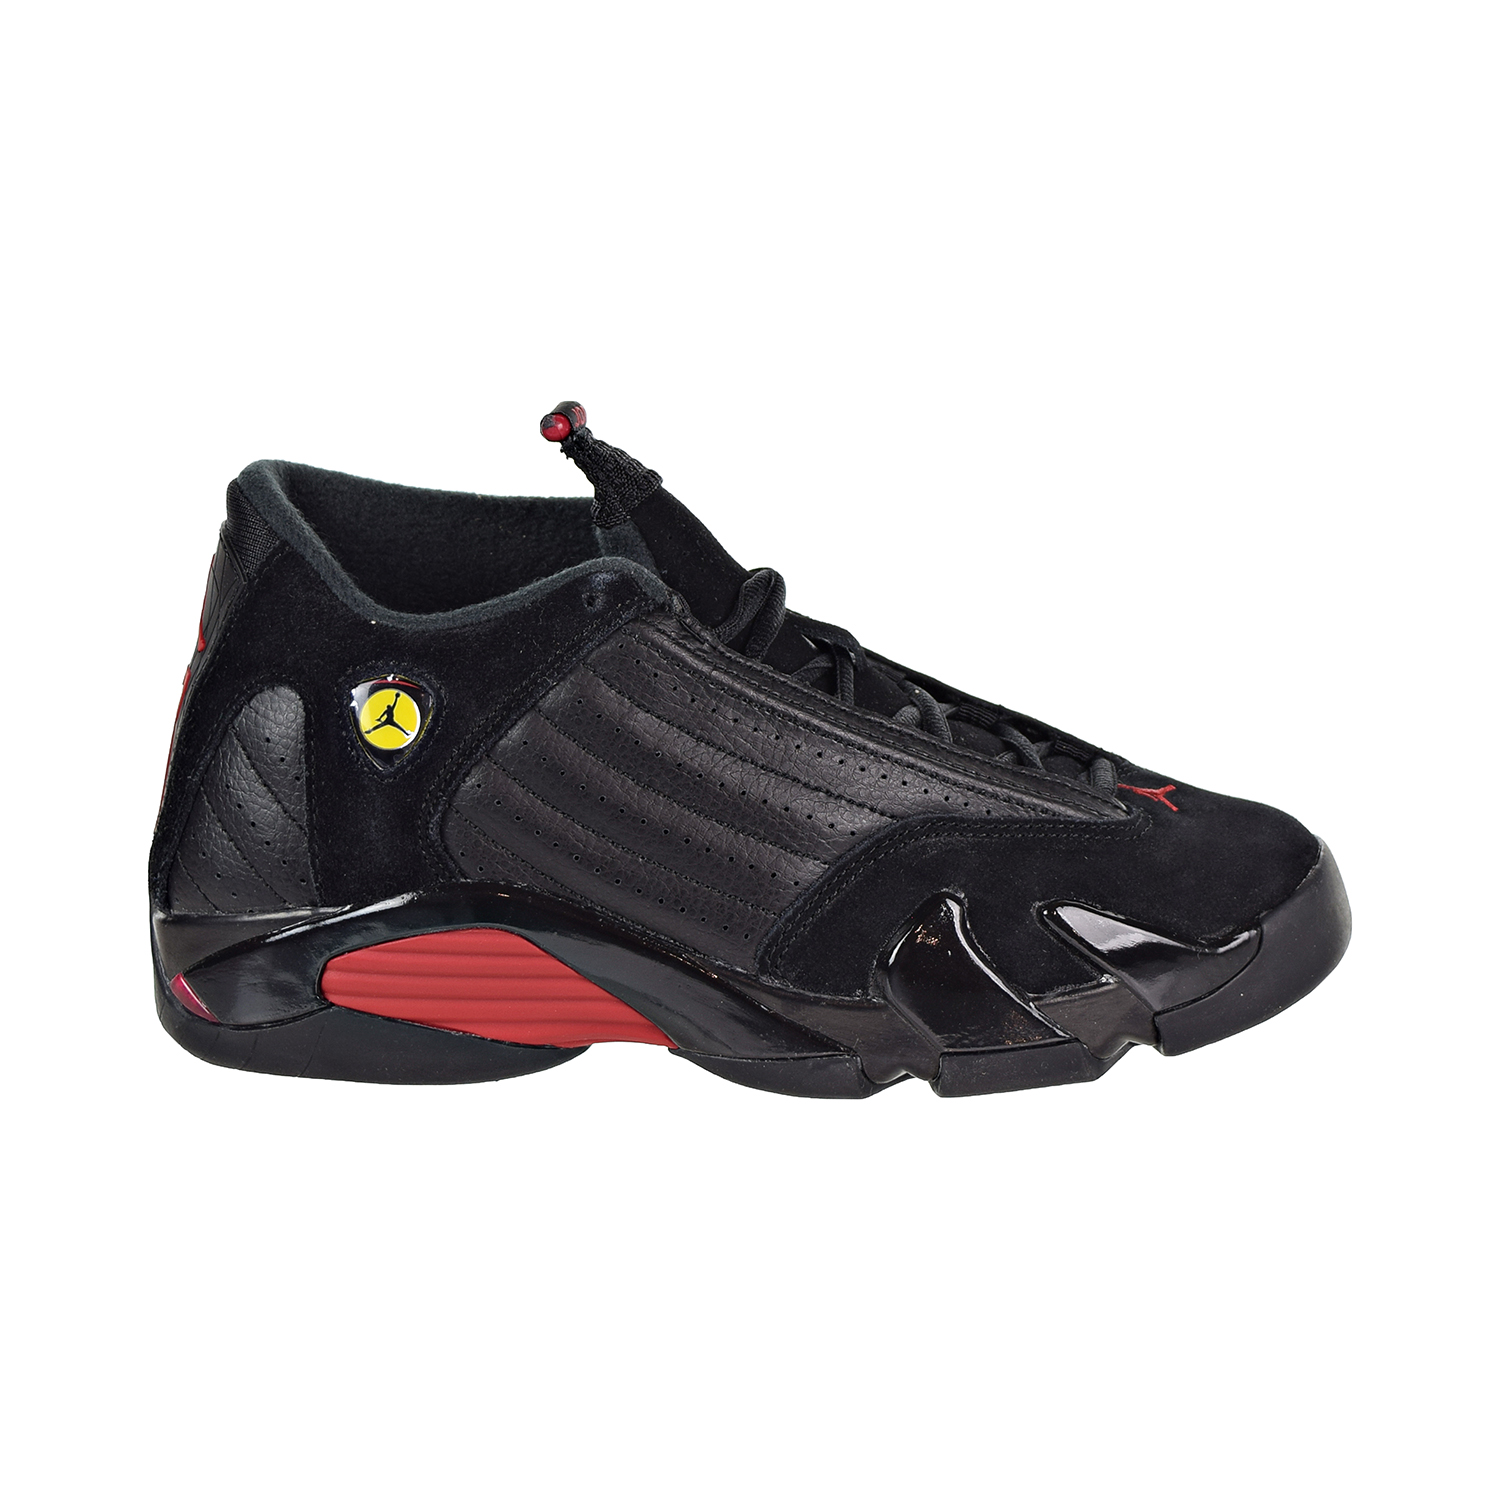 the latest b979c f9a90 Details about Nike Air Jordan 14 Retro Big Kids  Shoes Black Varsity  Red Black 487524-003